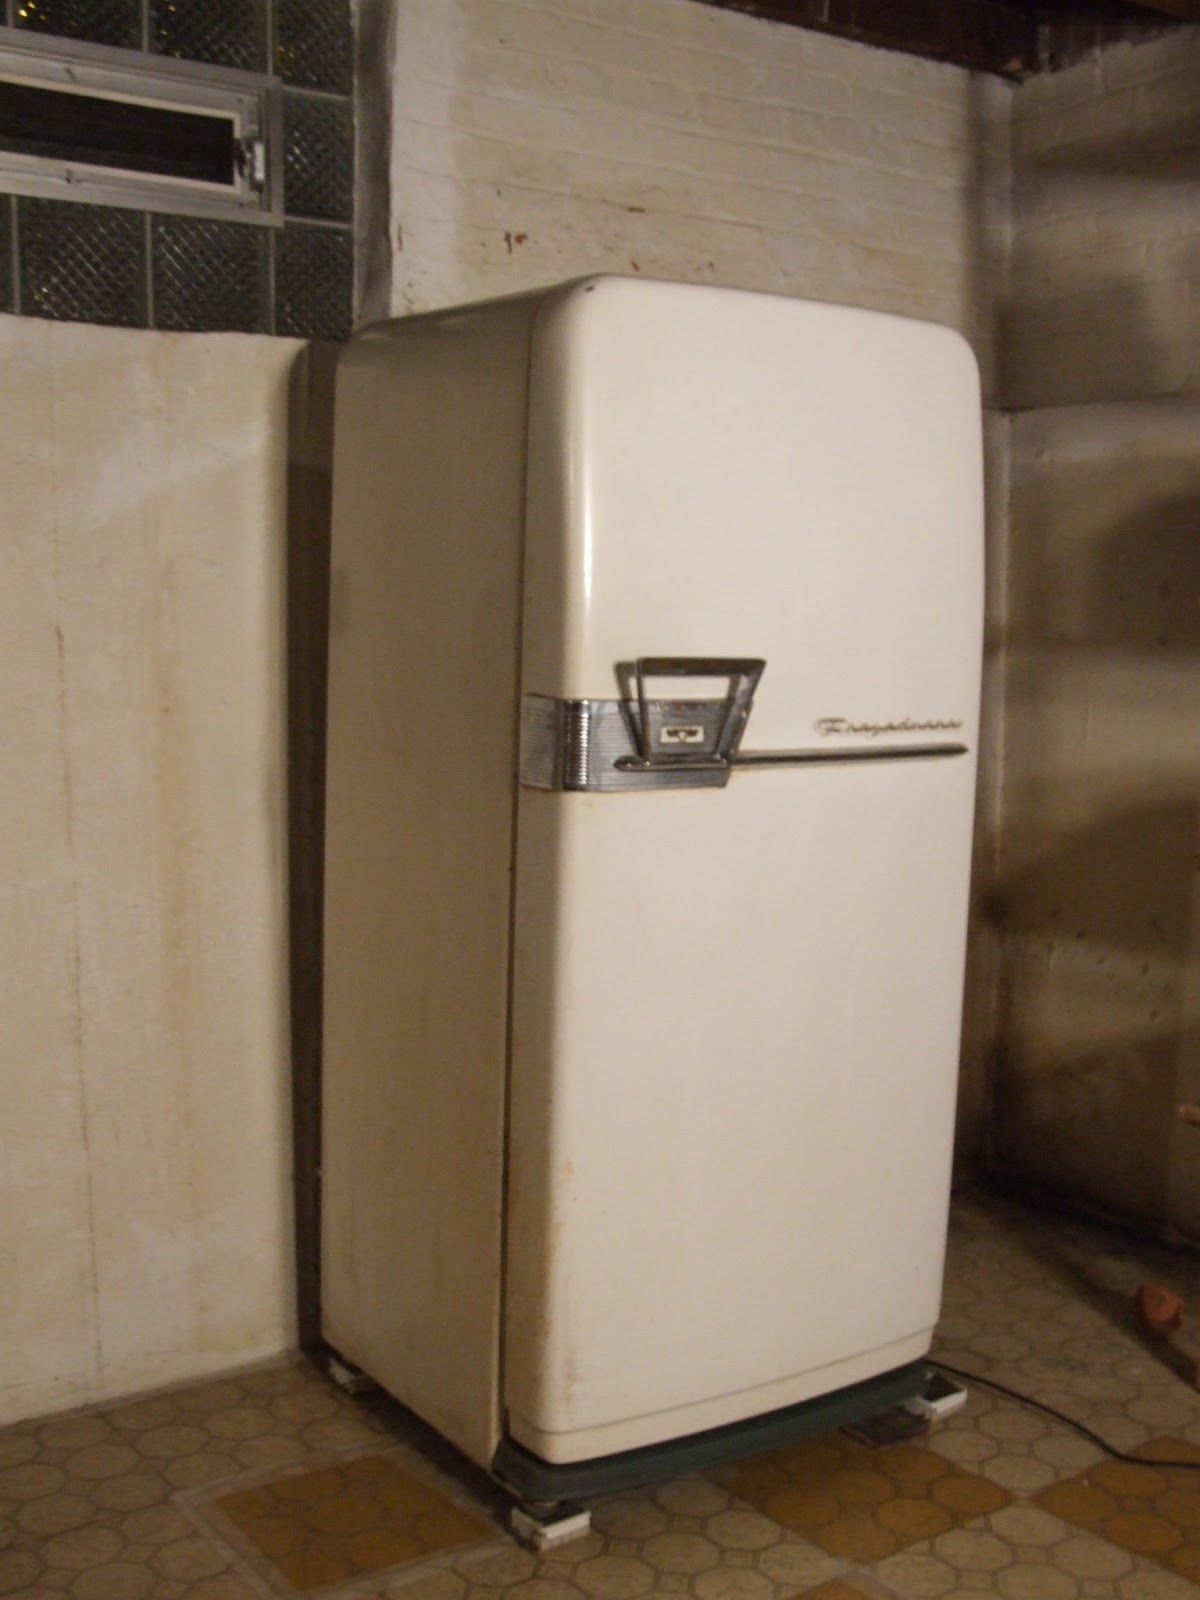 Jd Power Refrigerators: 1950 General Electric Refrigerator Parts